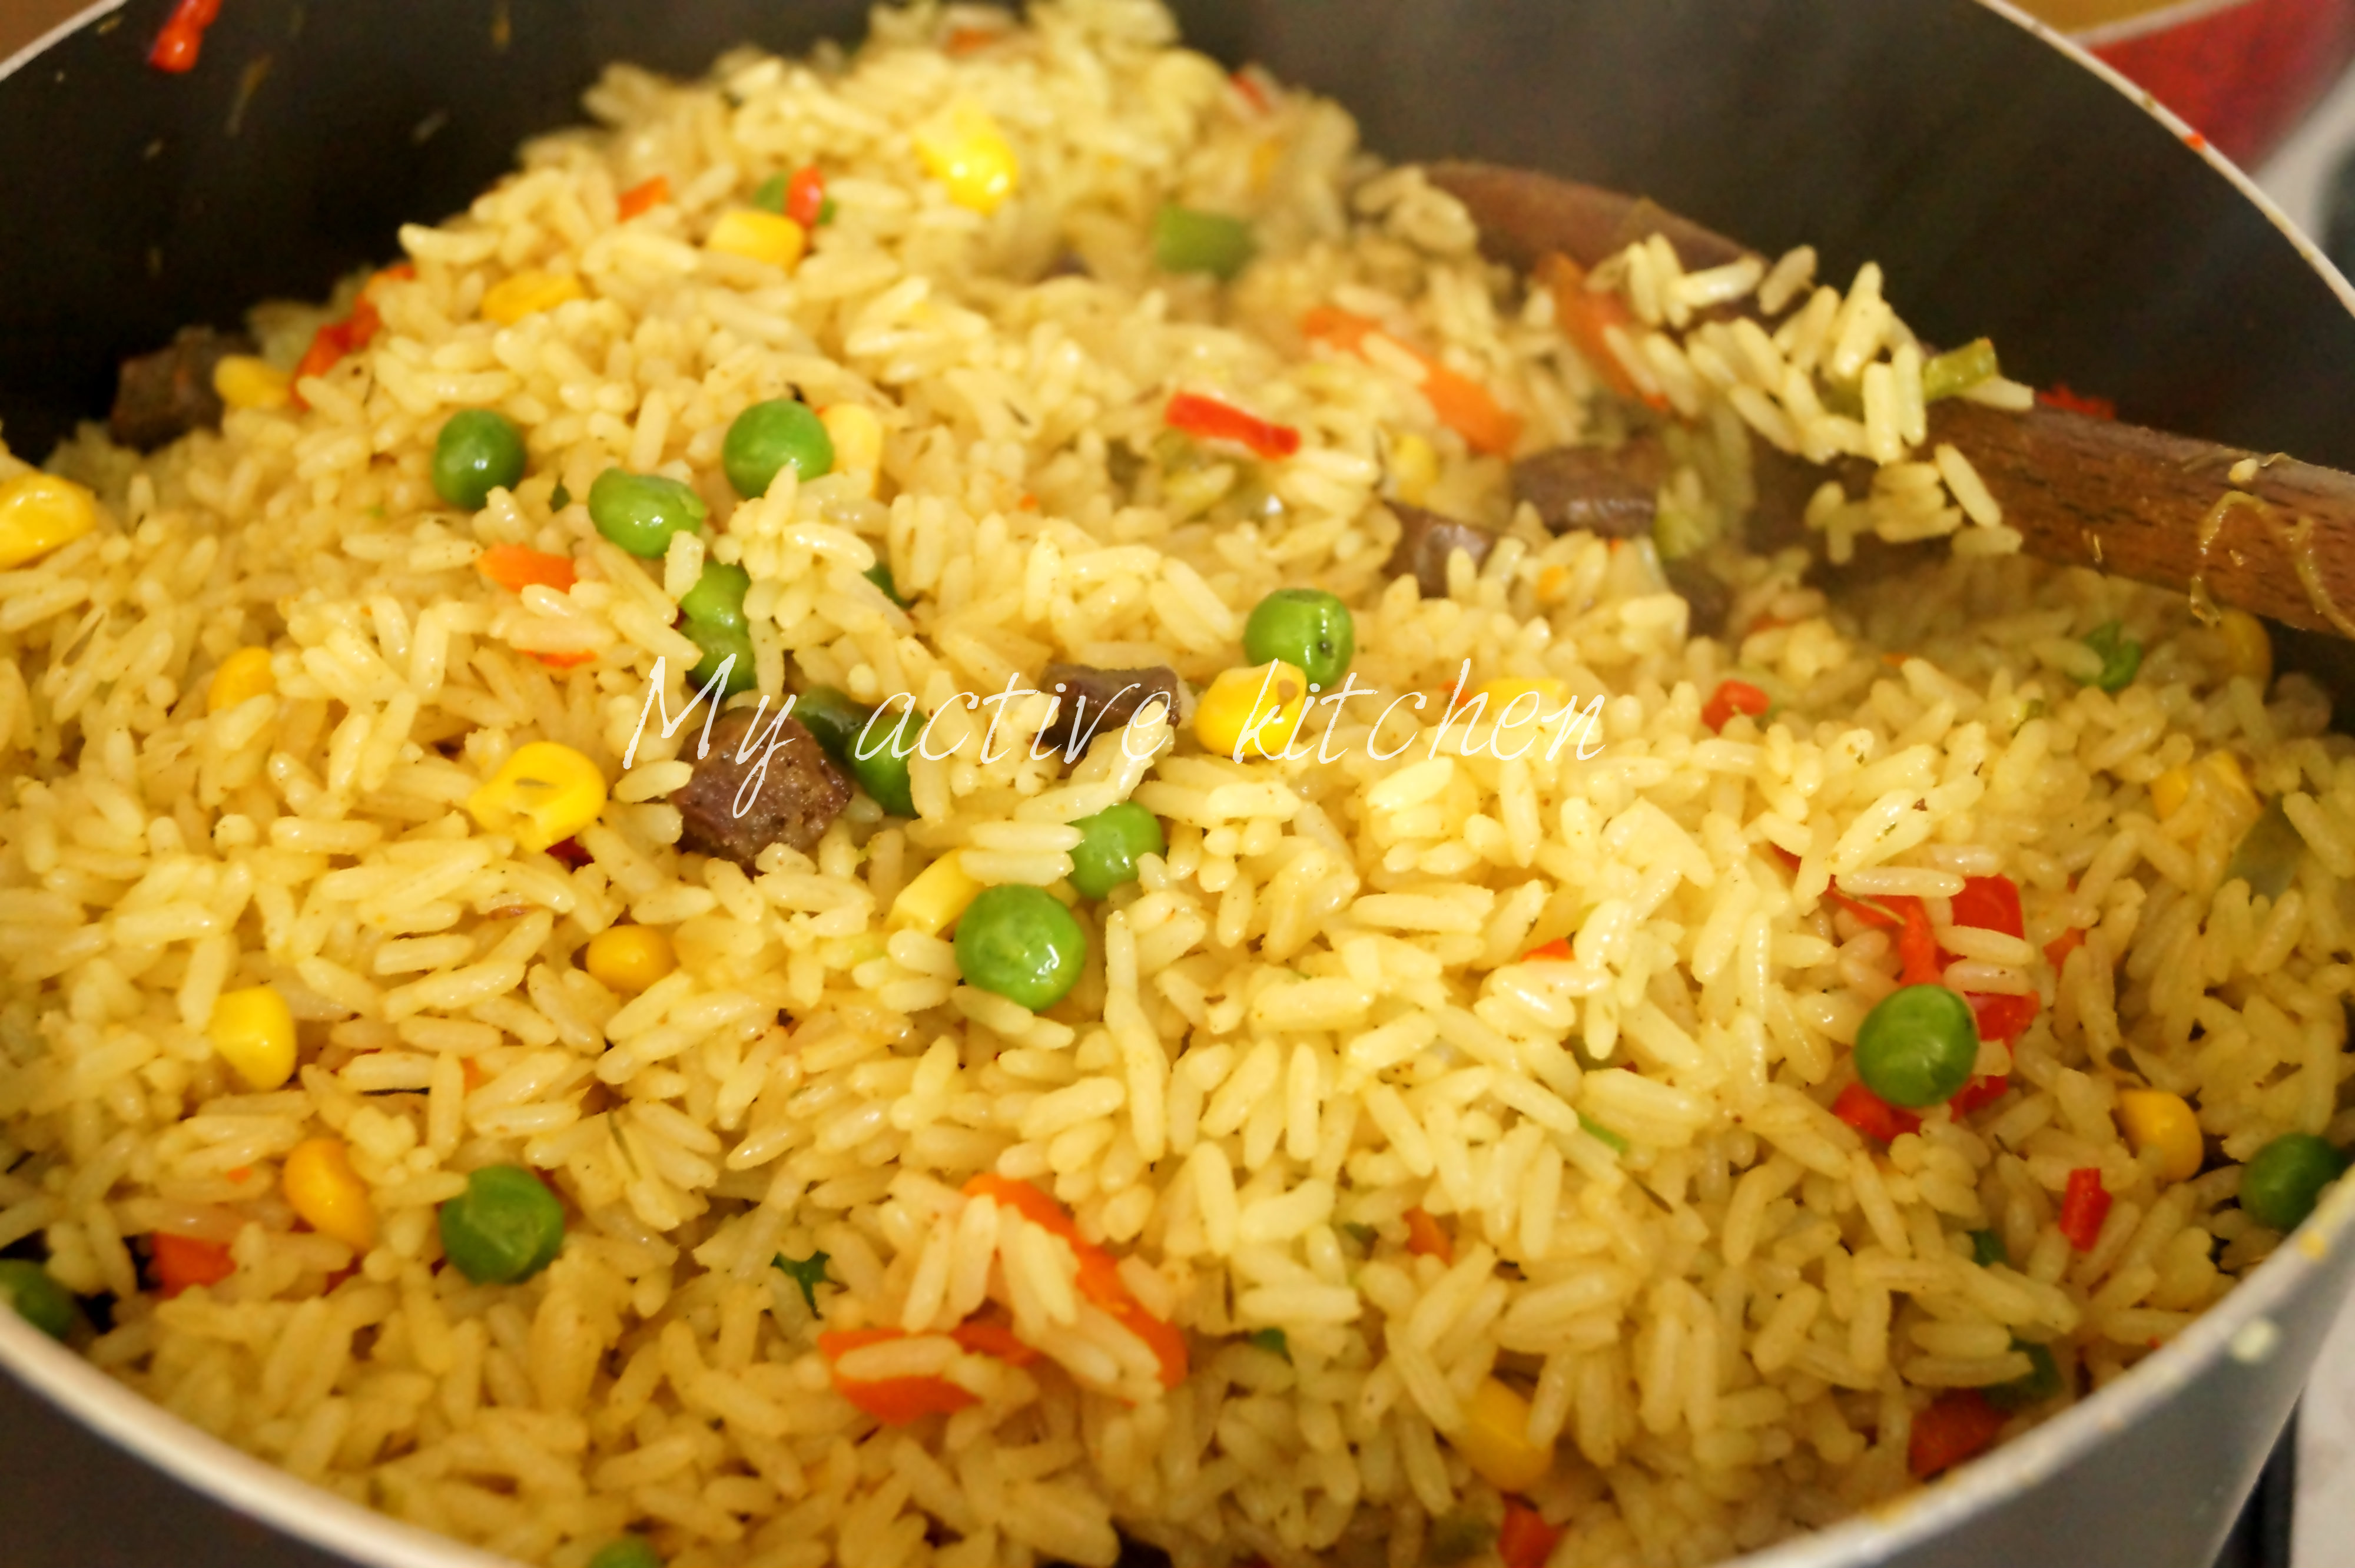 Coconut fried rice my active kitchen ccuart Images